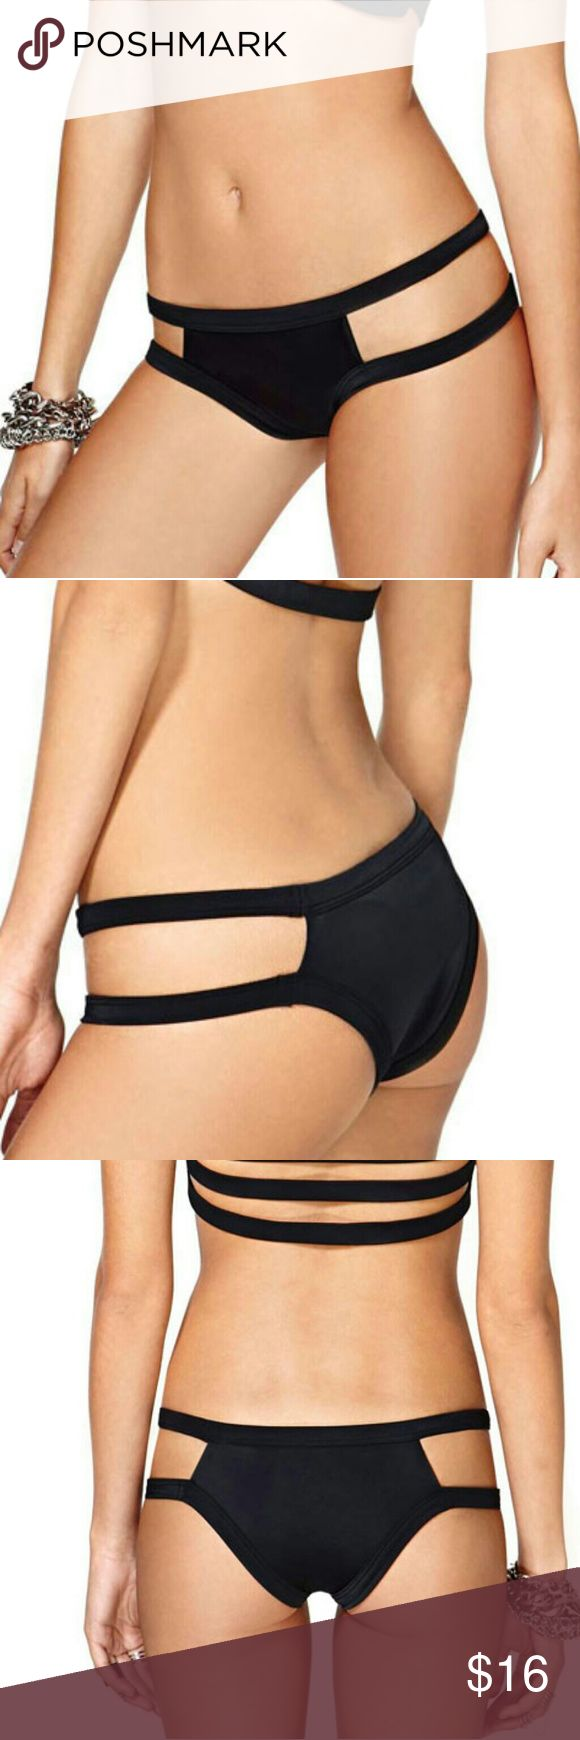 New! BLACK BANDIT Sexy Cut-out Caged Bikini Bottom New BLACK BANDIT Sexy Cut-out Banded Caged Back Bikini Bottom  Bikini Top sold separately, see other listing. Also available in Red.  Material: Polyamide+Elasthane Swim Bikinis